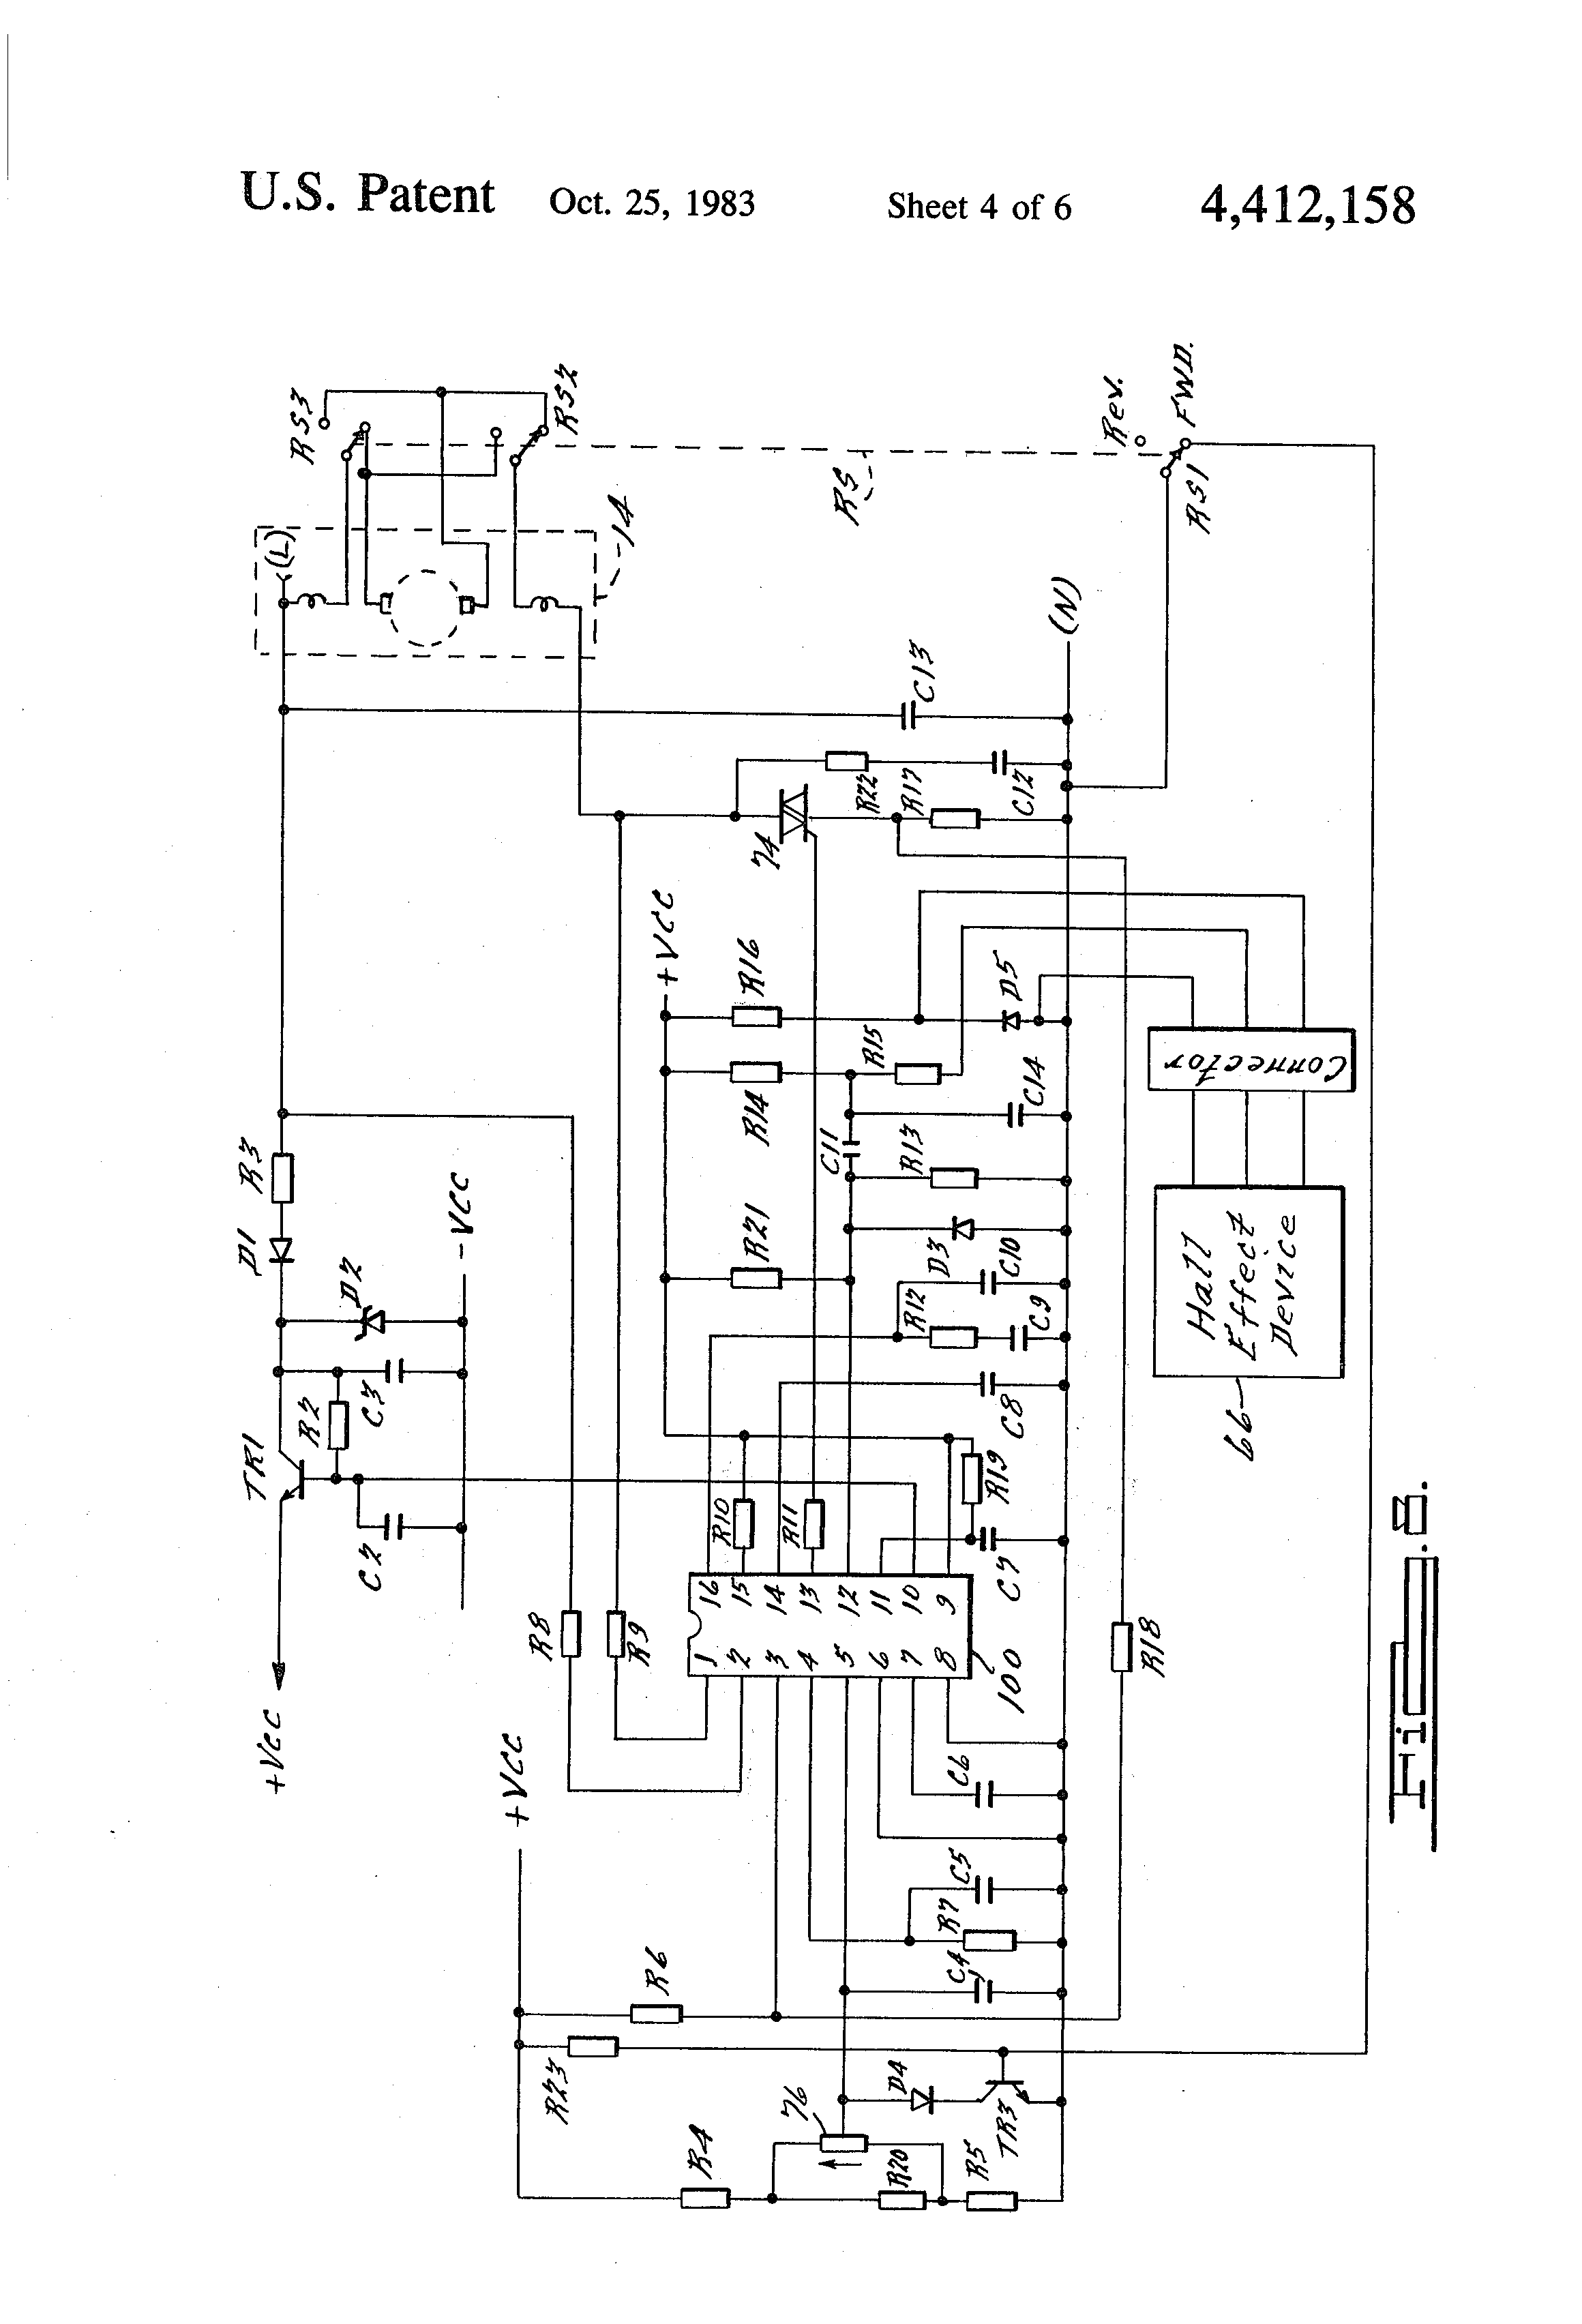 Wiring Diagram For Electric Drill : Patent us speed control circuit for an electric